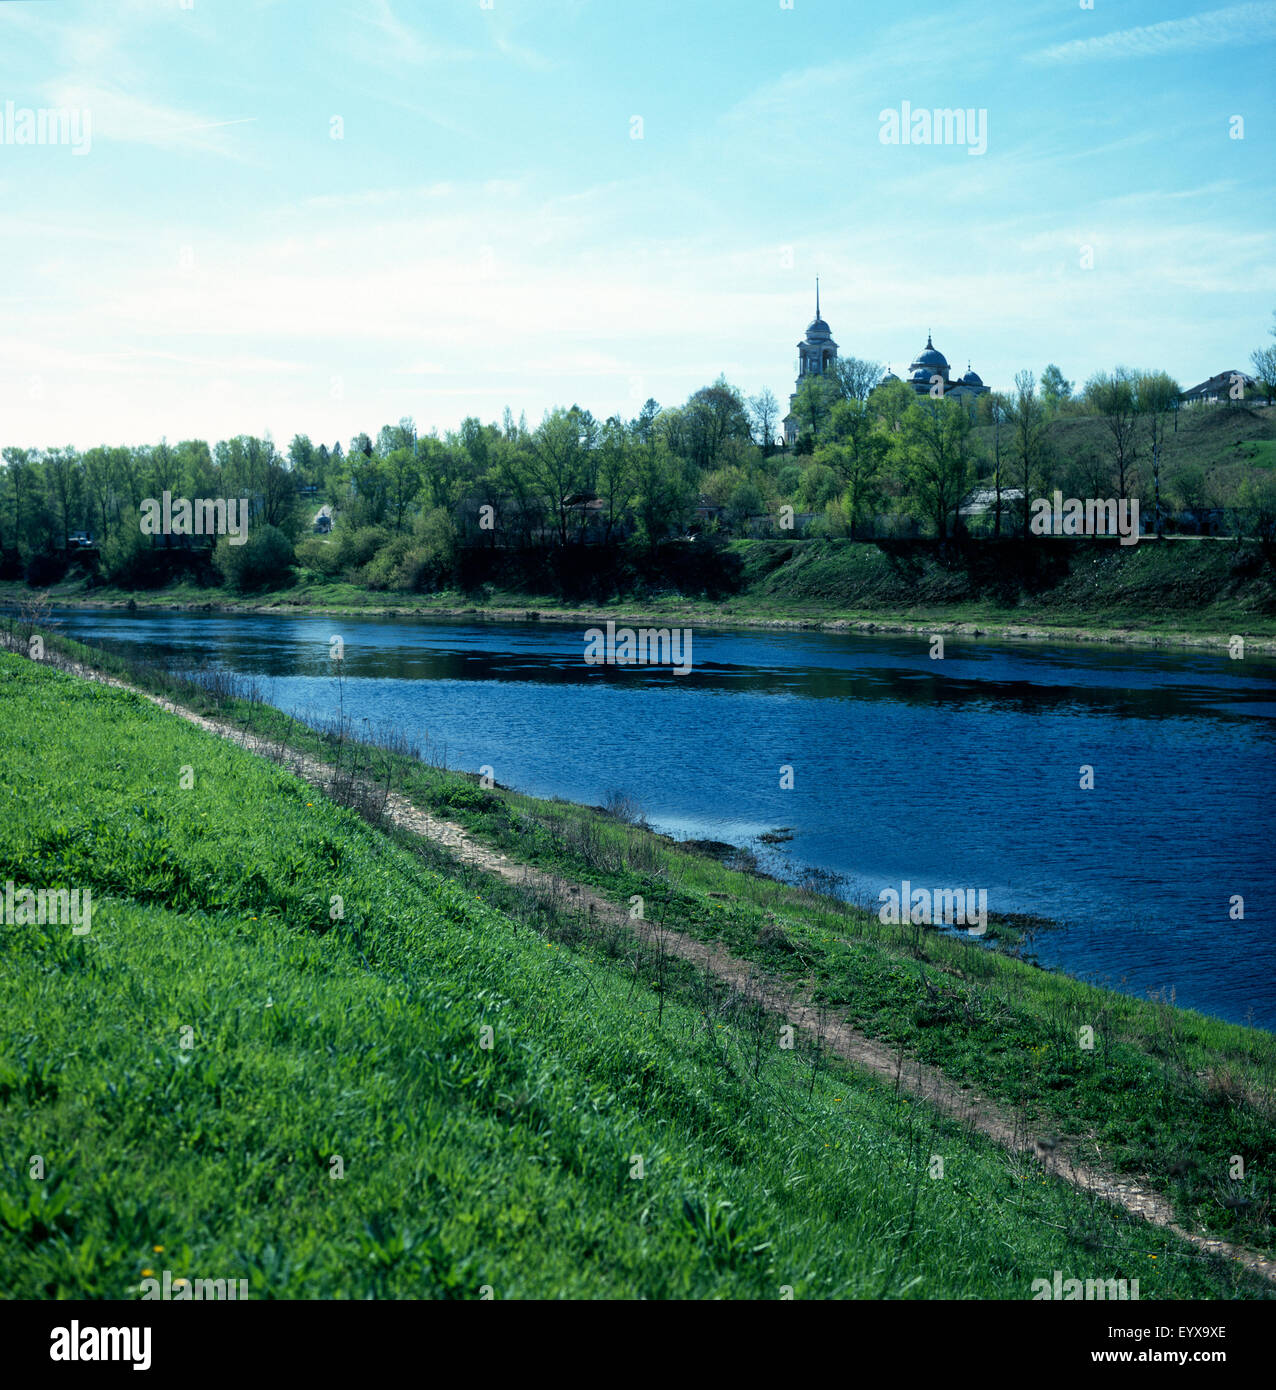 Churches on Volga river bank in Staritsa - Stock Image